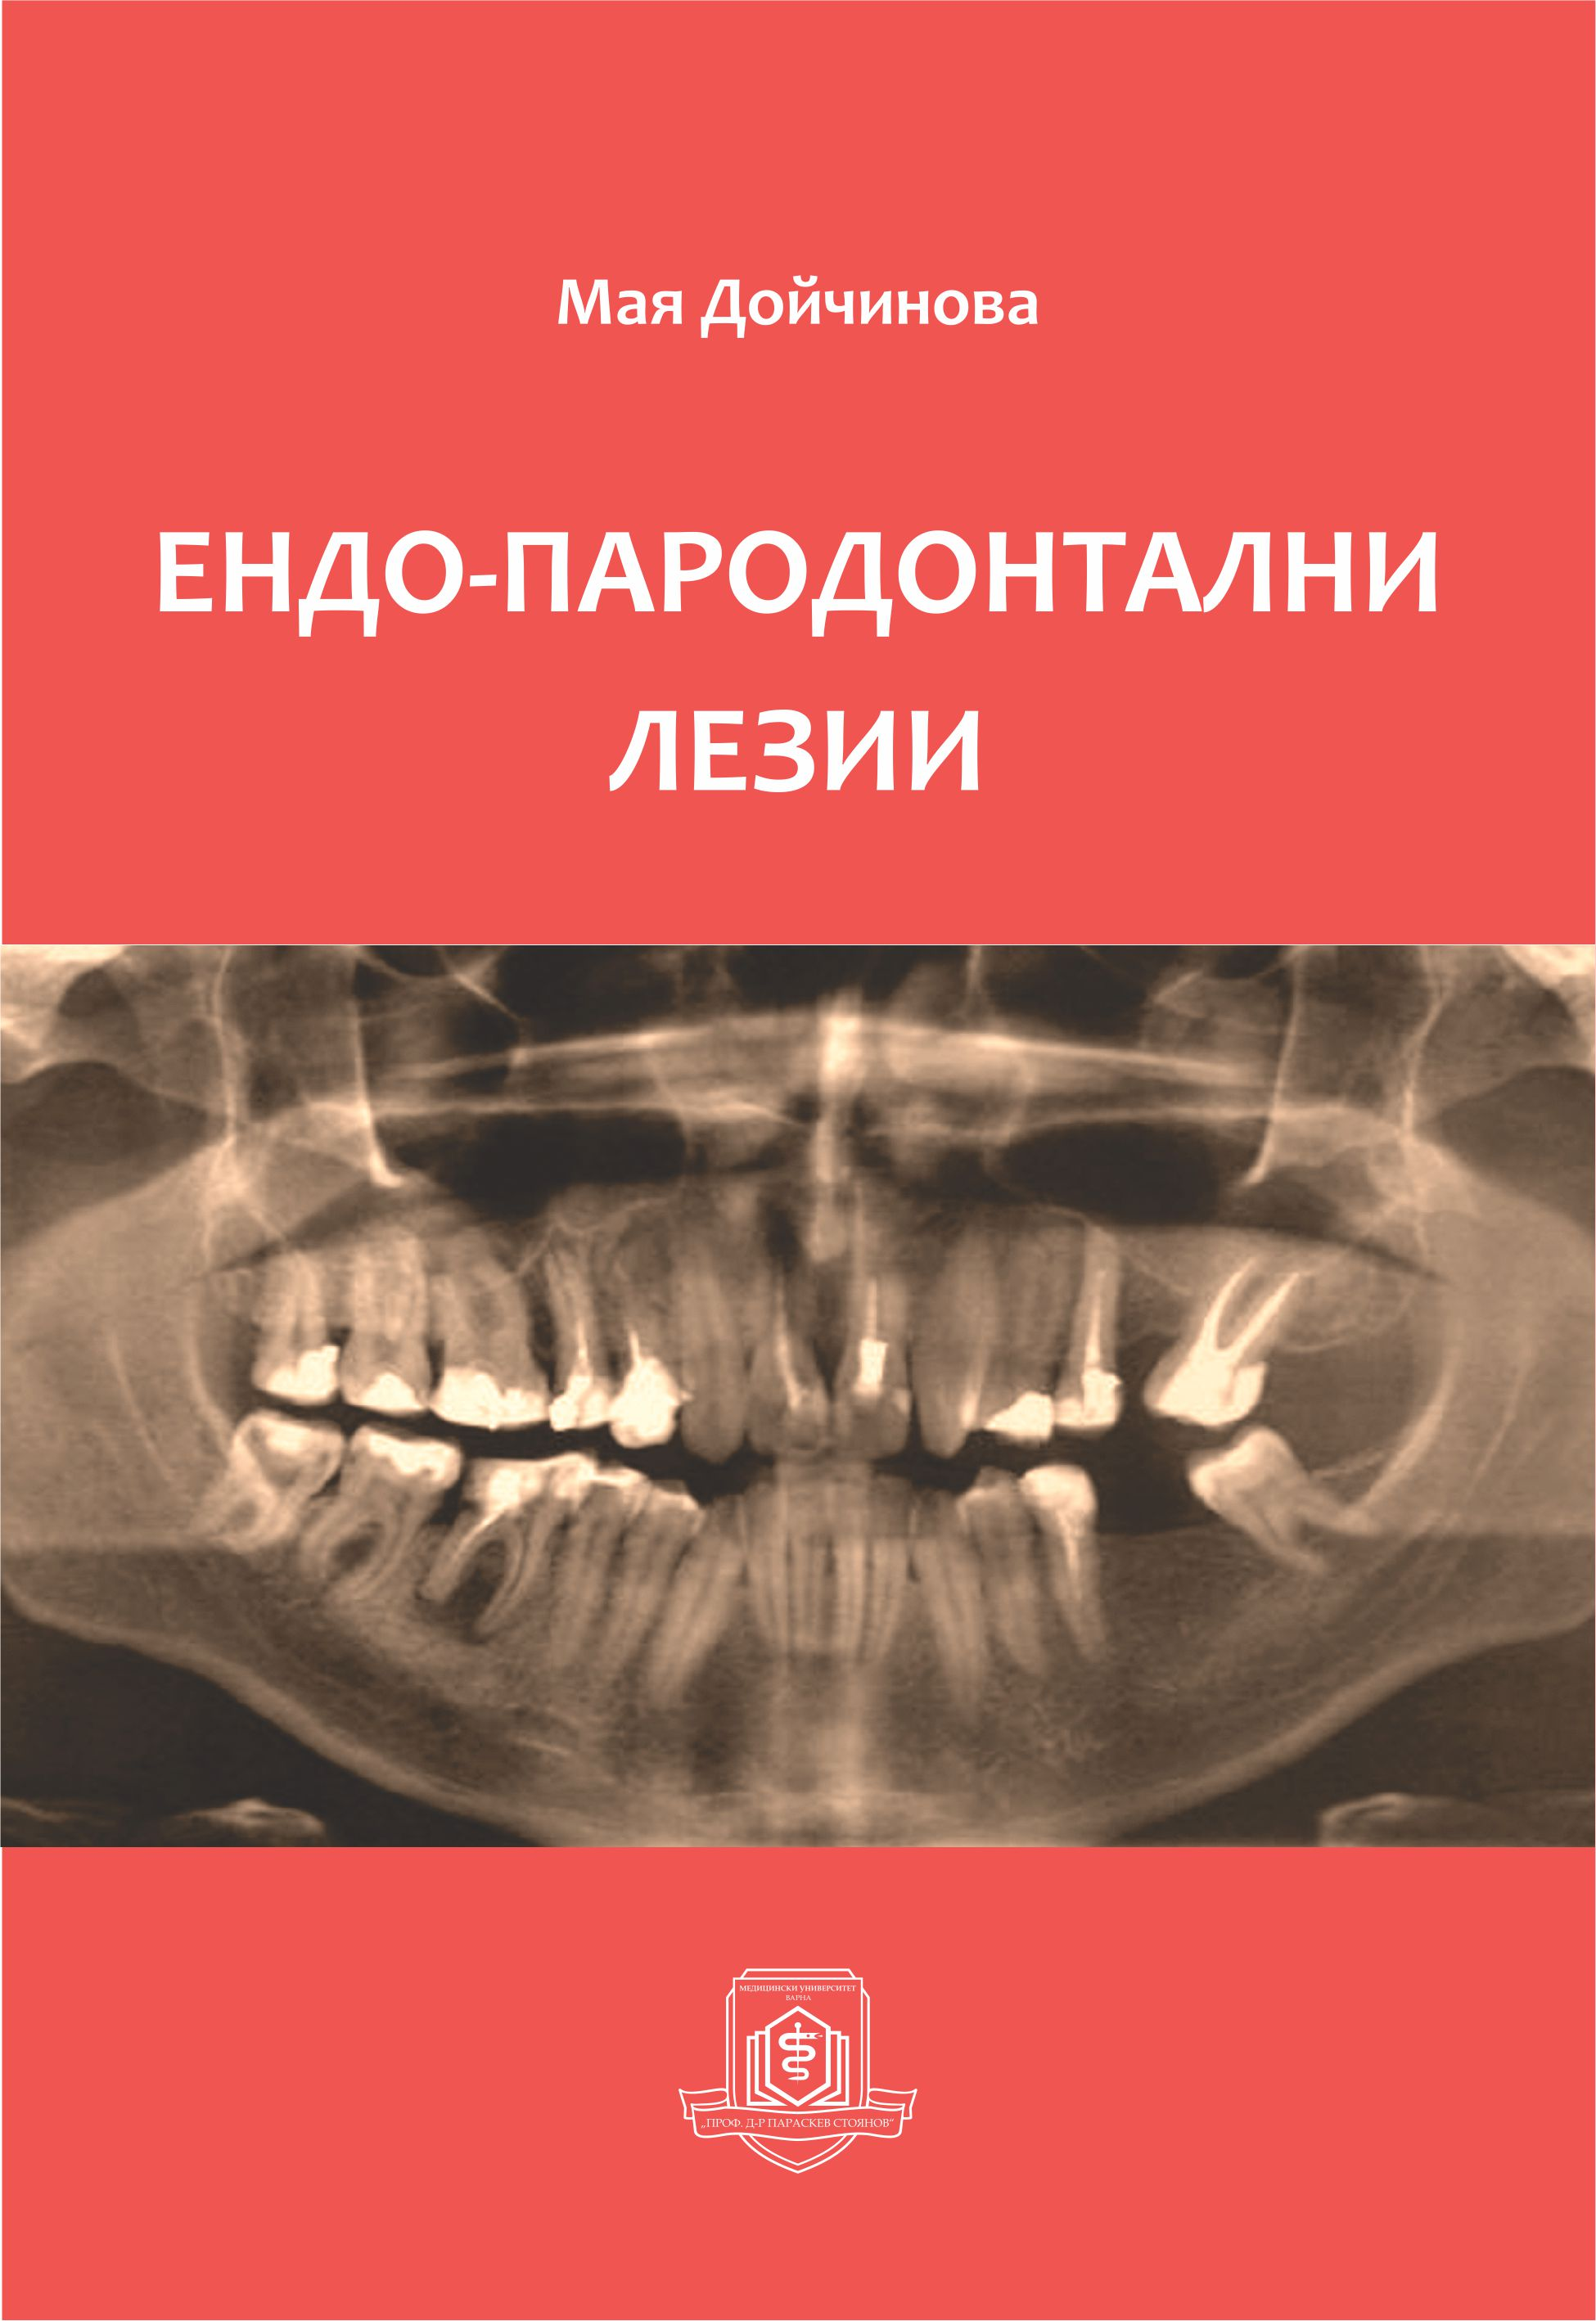 """Endo-Periodontal Lesions"" a Monograph of Maya Doychinova Has Been Published"